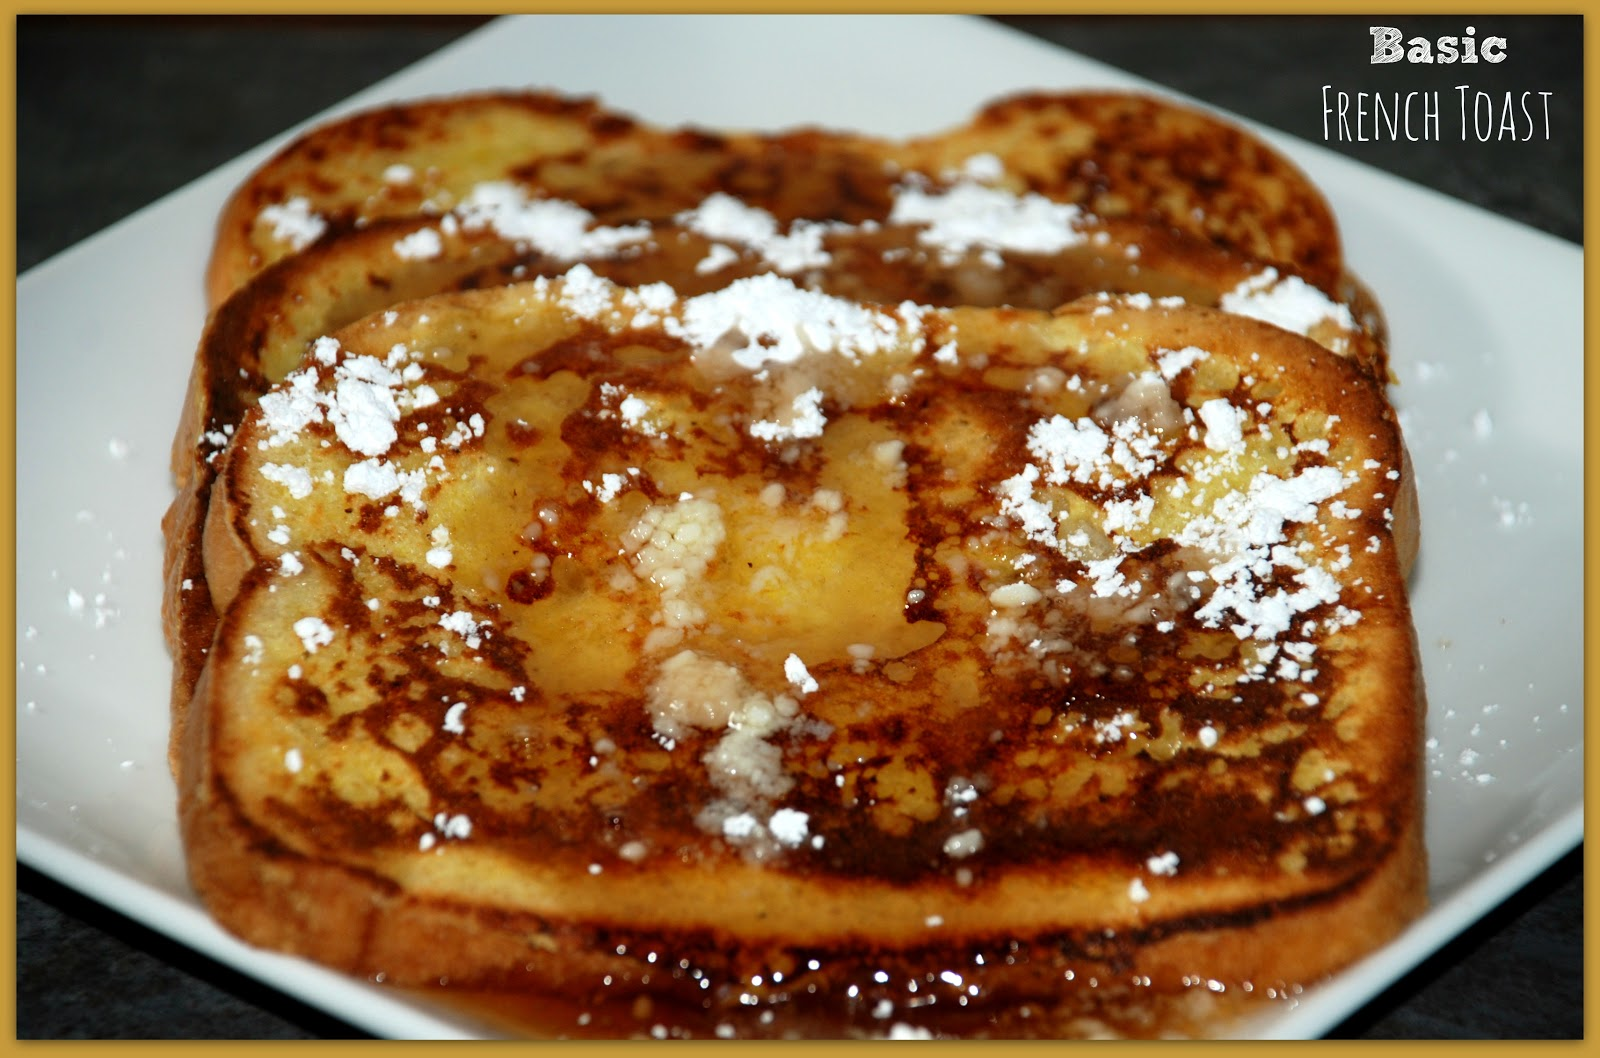 Living Rancho Delux: Basic French Toast